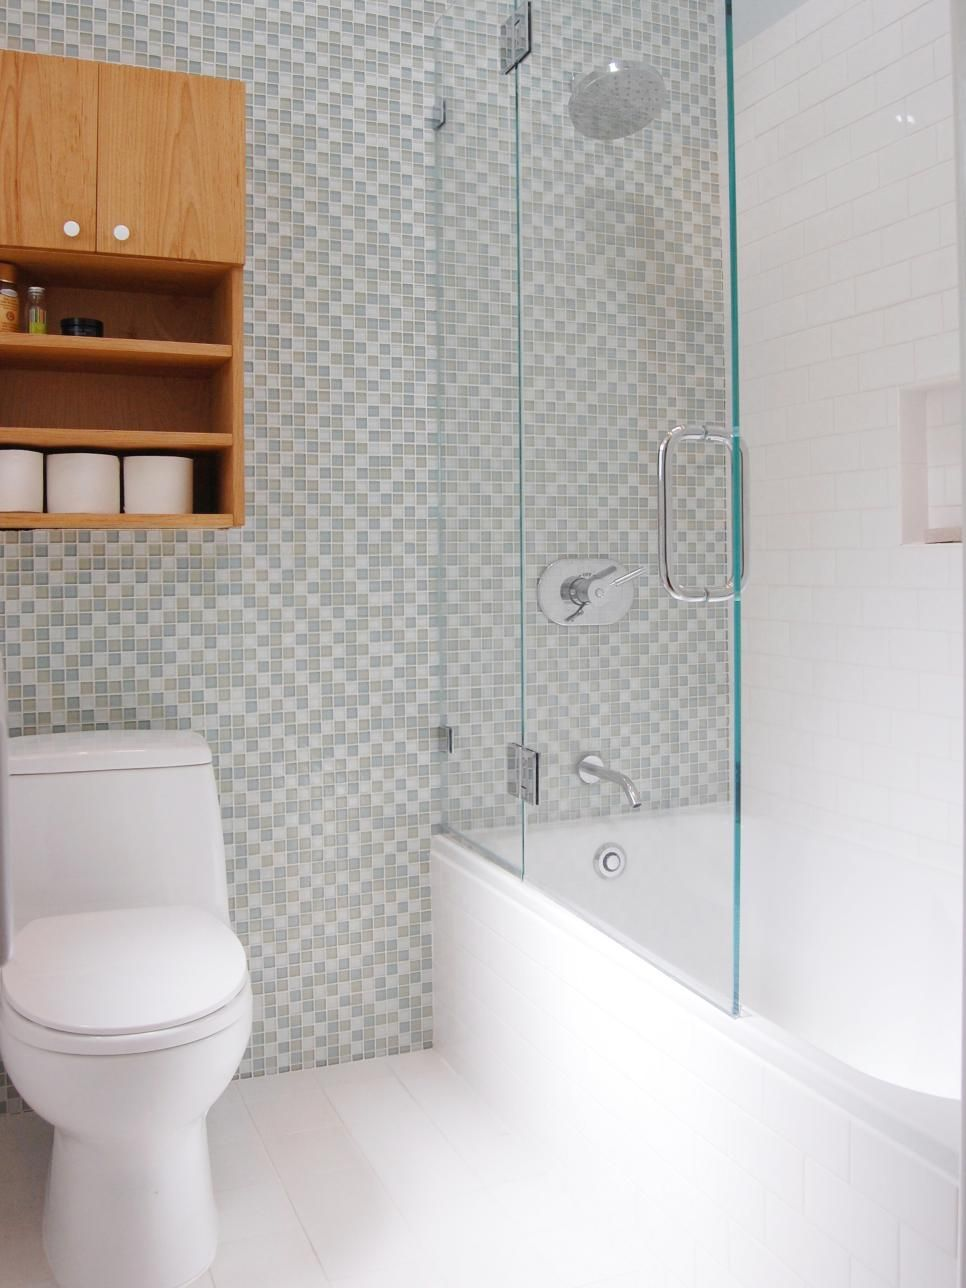 Modern Bathroom With Neutral Wall Tiles and Glass Shower